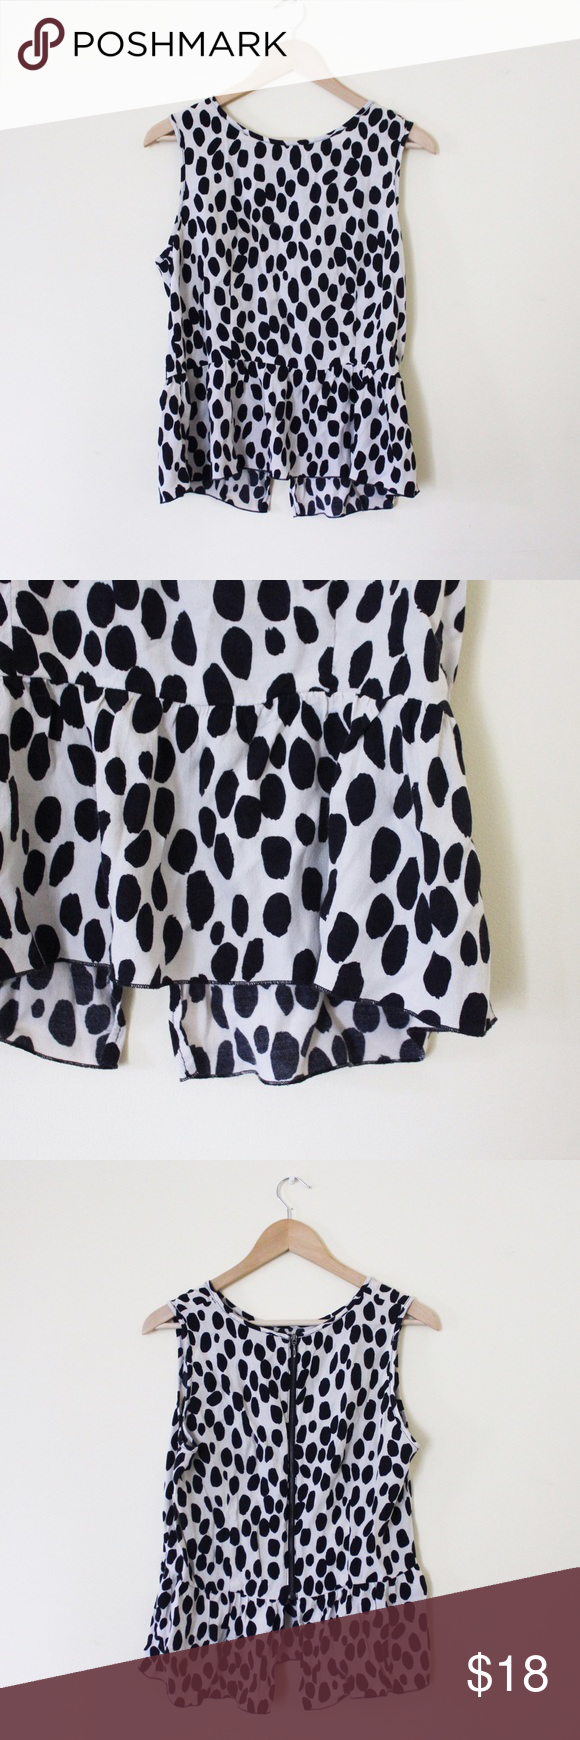 Polka dot blouse Peplum polka dot blouse. Back zipper. Good condition! Size 12, but closer to an 8/10. H&M Tops Tank Tops